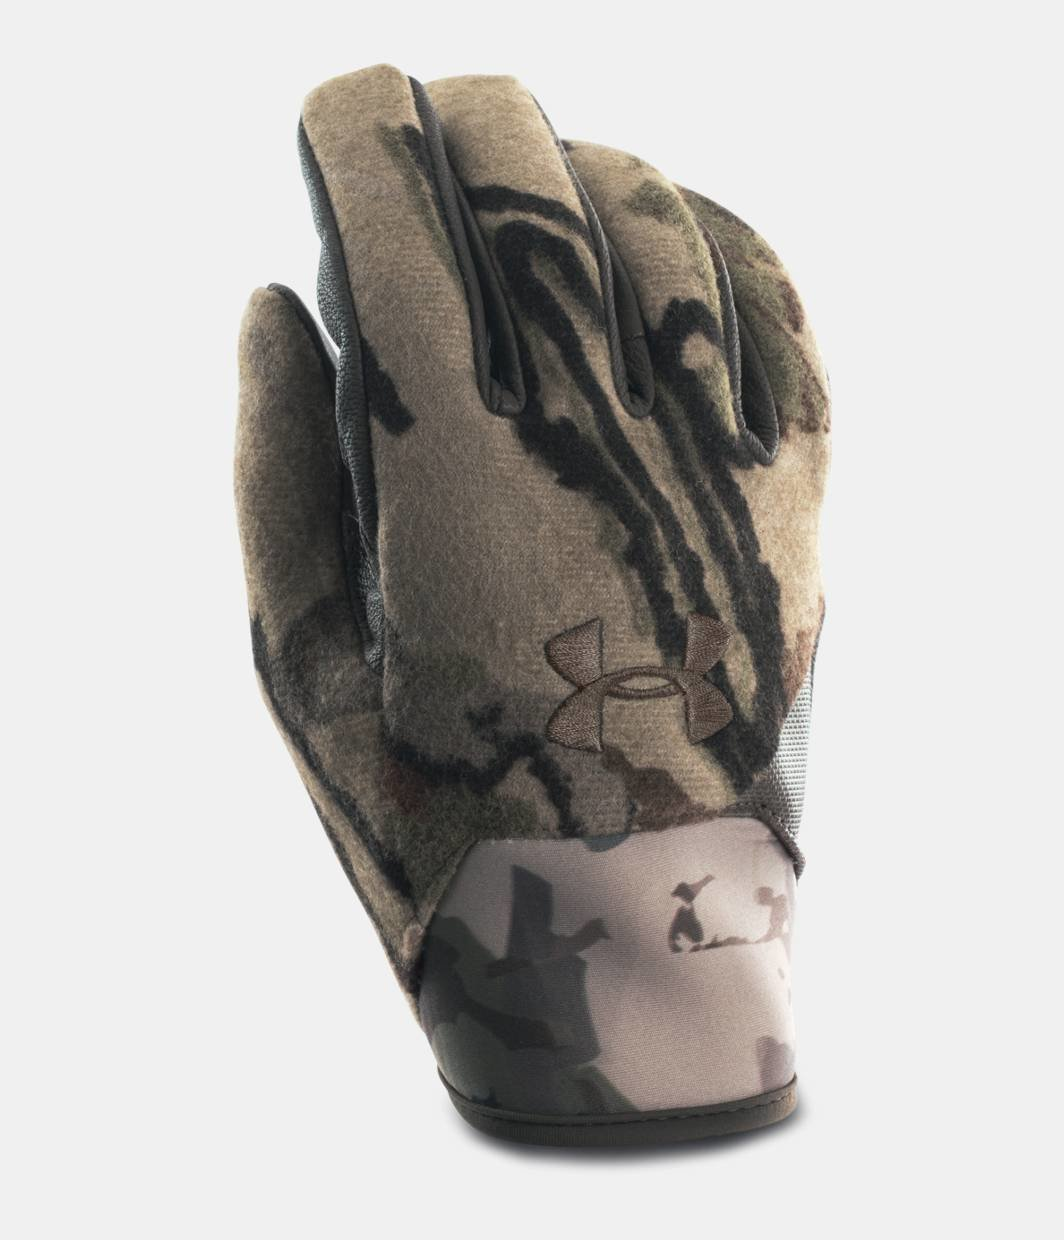 Under Armour Men's UA Ridge Reaper Trigger Gloves -Size Choices 14521